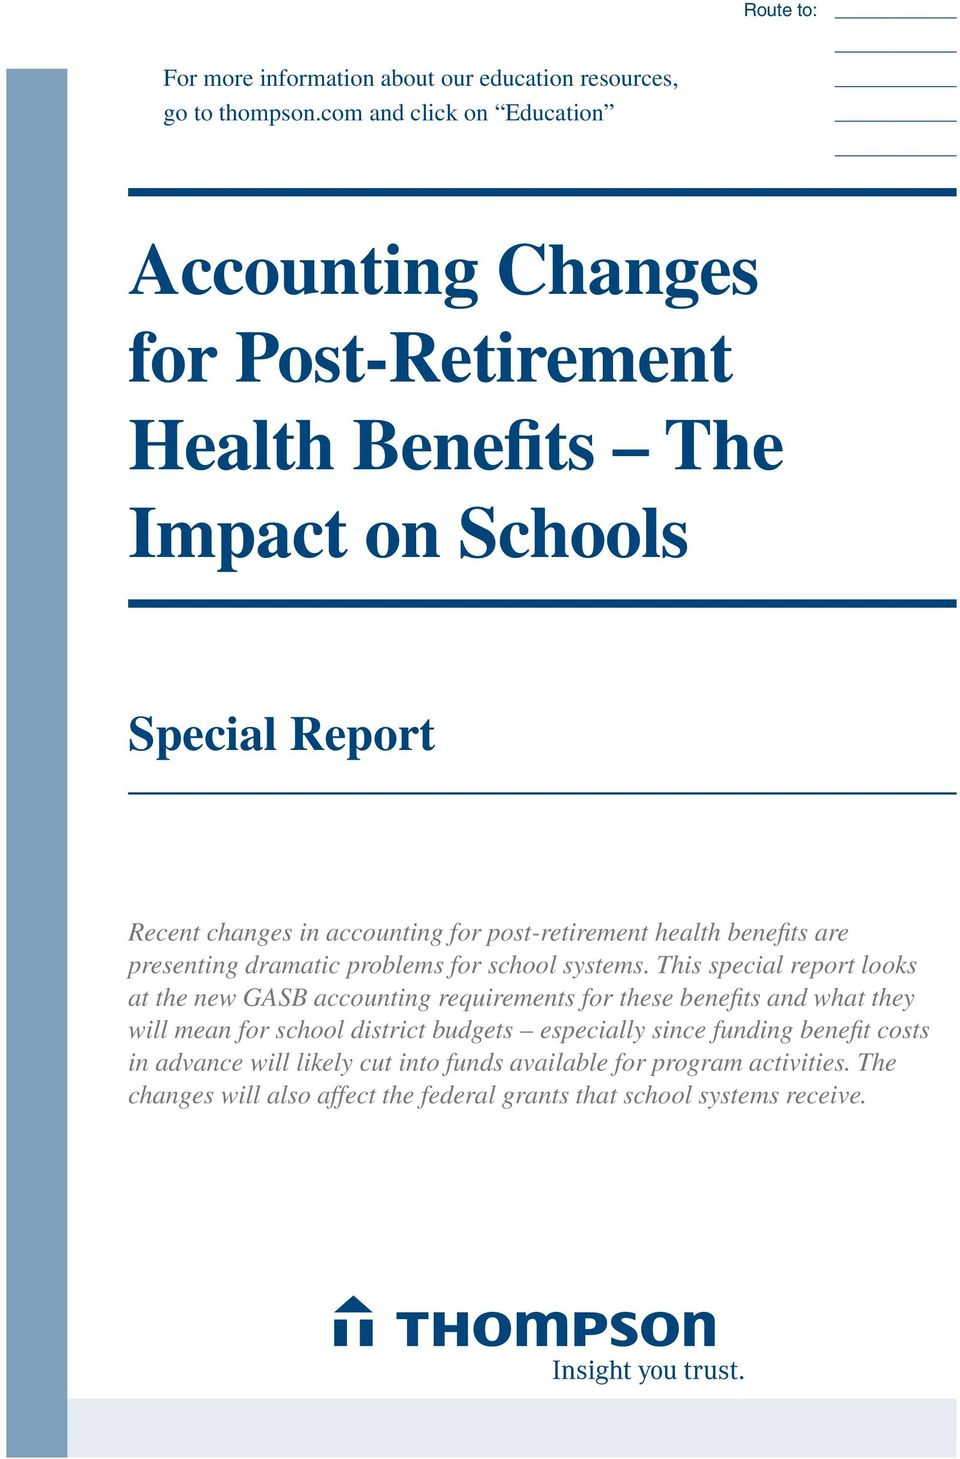 post-retirement health benefits are presenting dramatic problems for school systems.